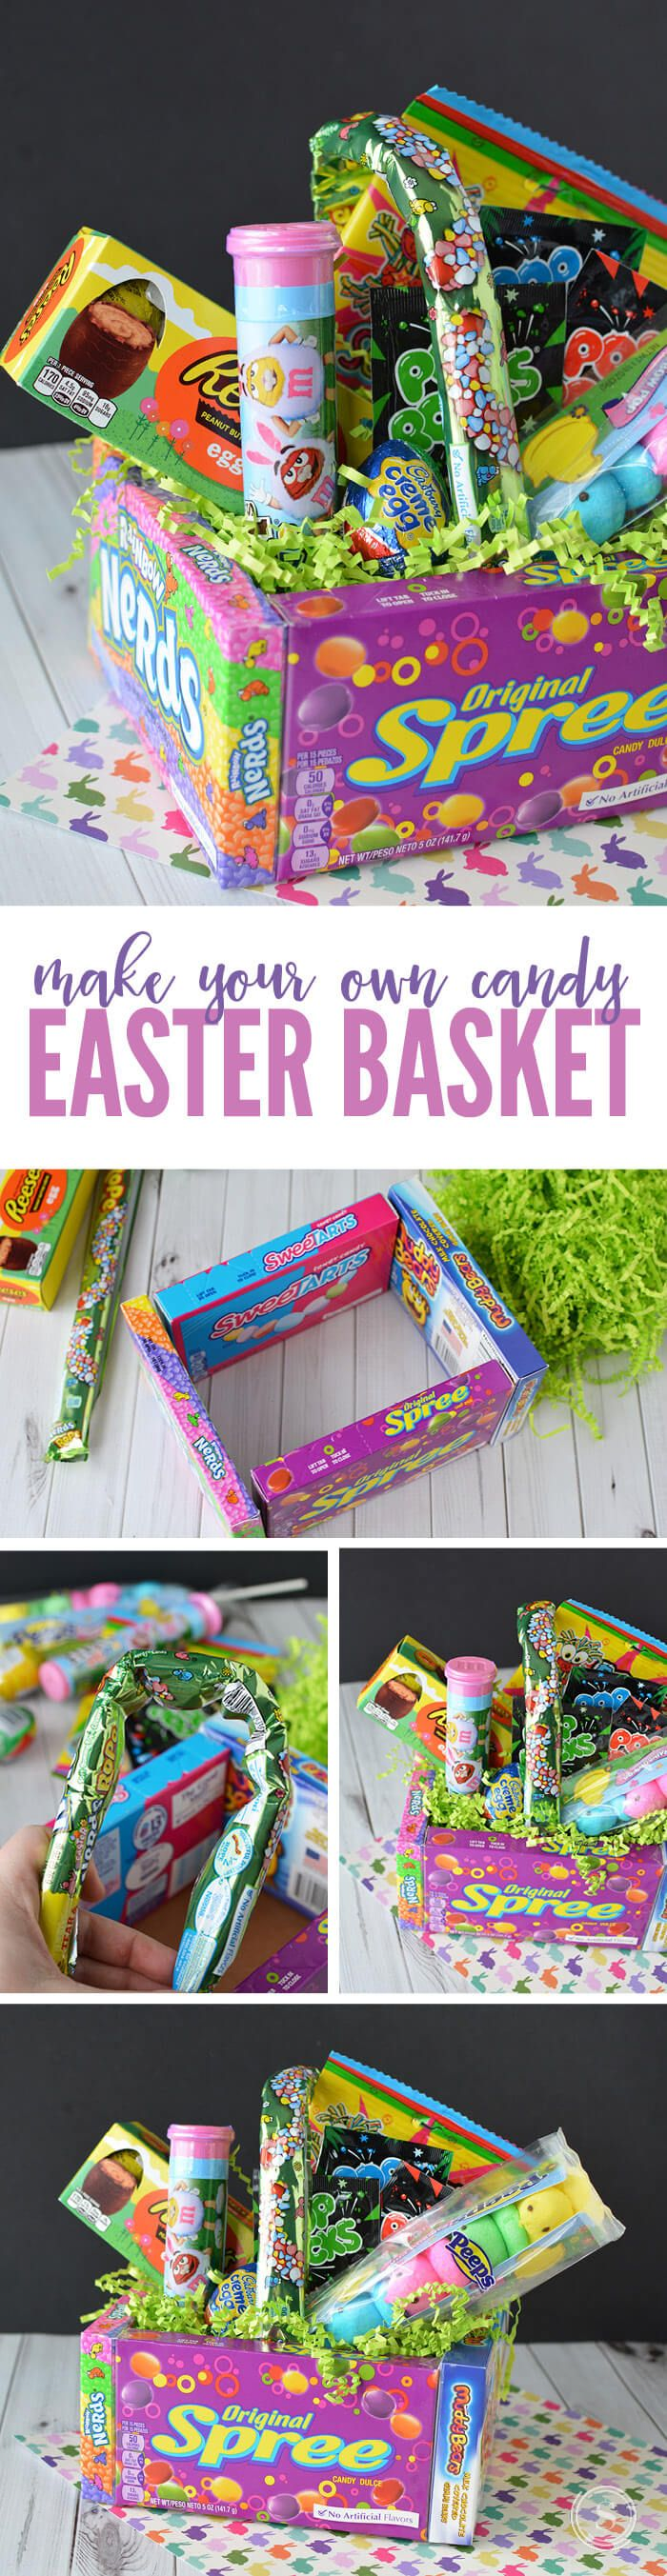 16 best eastervalentinessttricks day images on pinterest diy candy easter basket an easy and creative way to make a fun easter basket negle Image collections